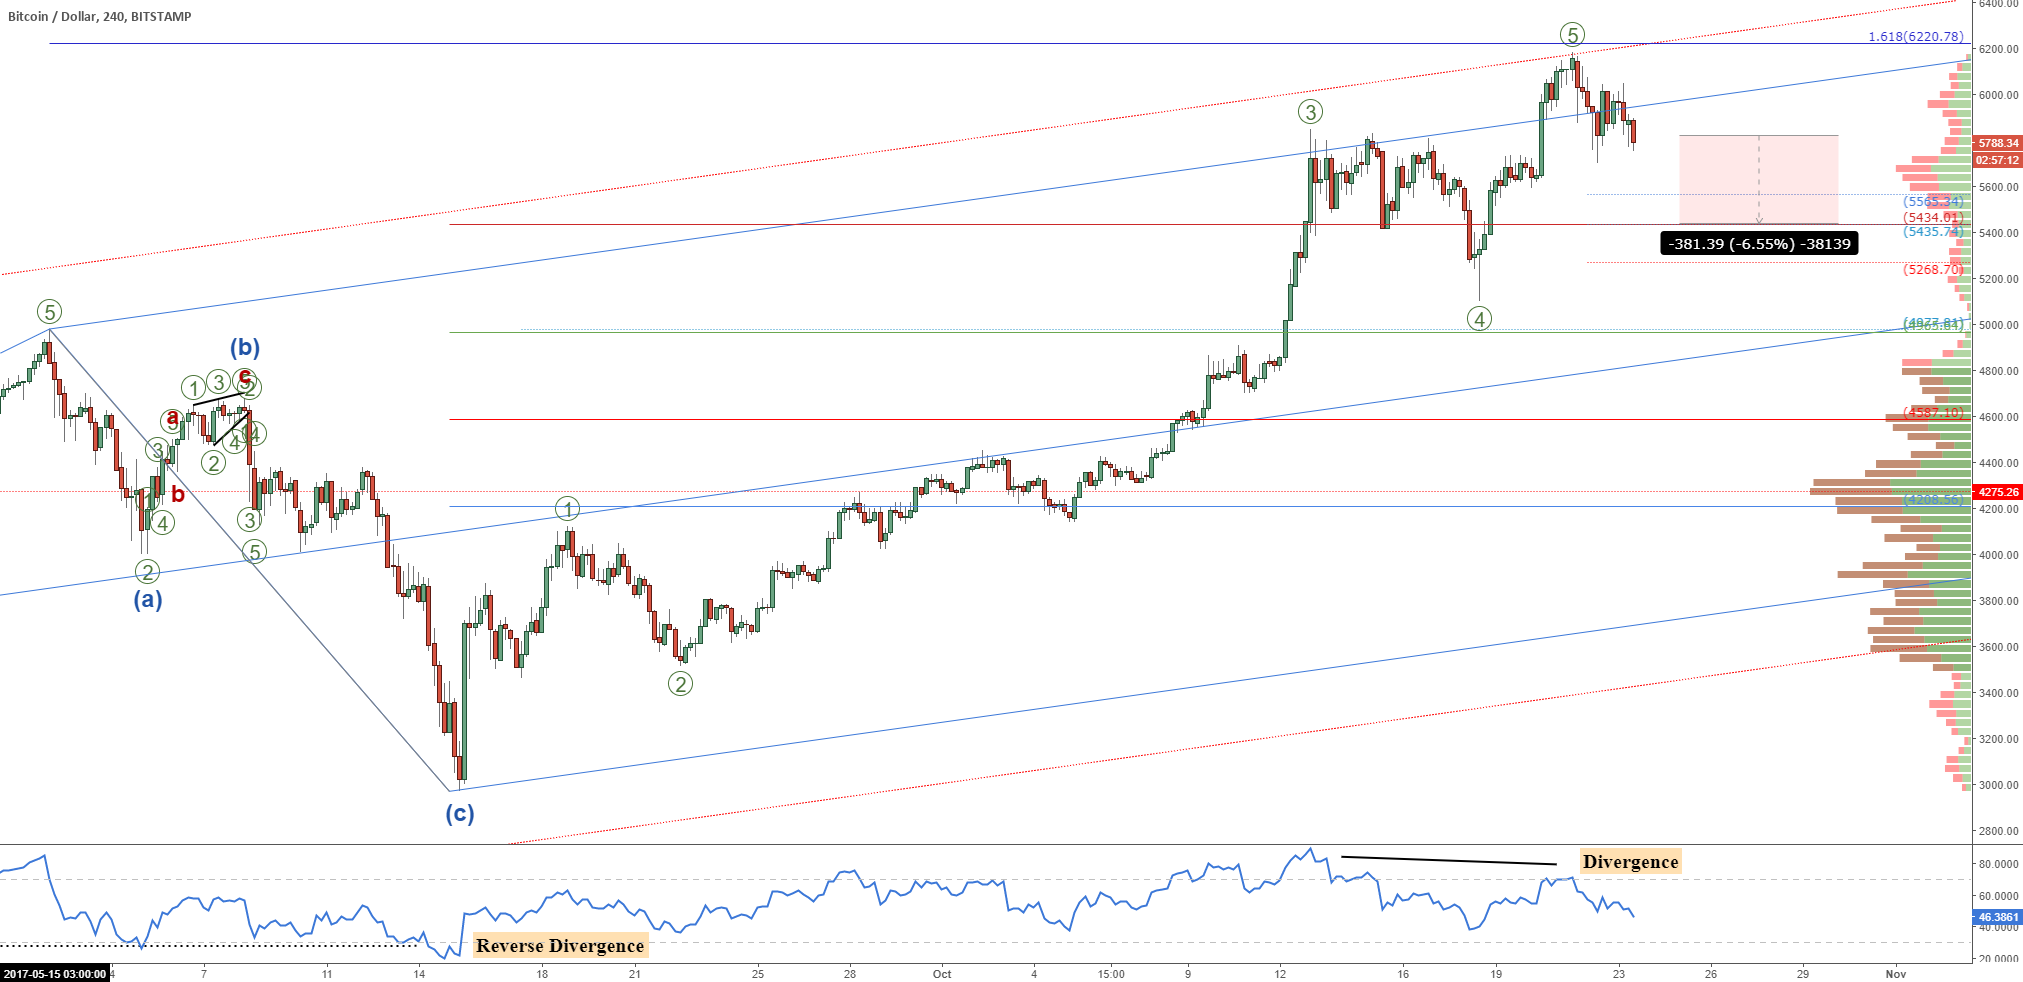 Bitcoin (BTCUSD): Pullback Is Under Way